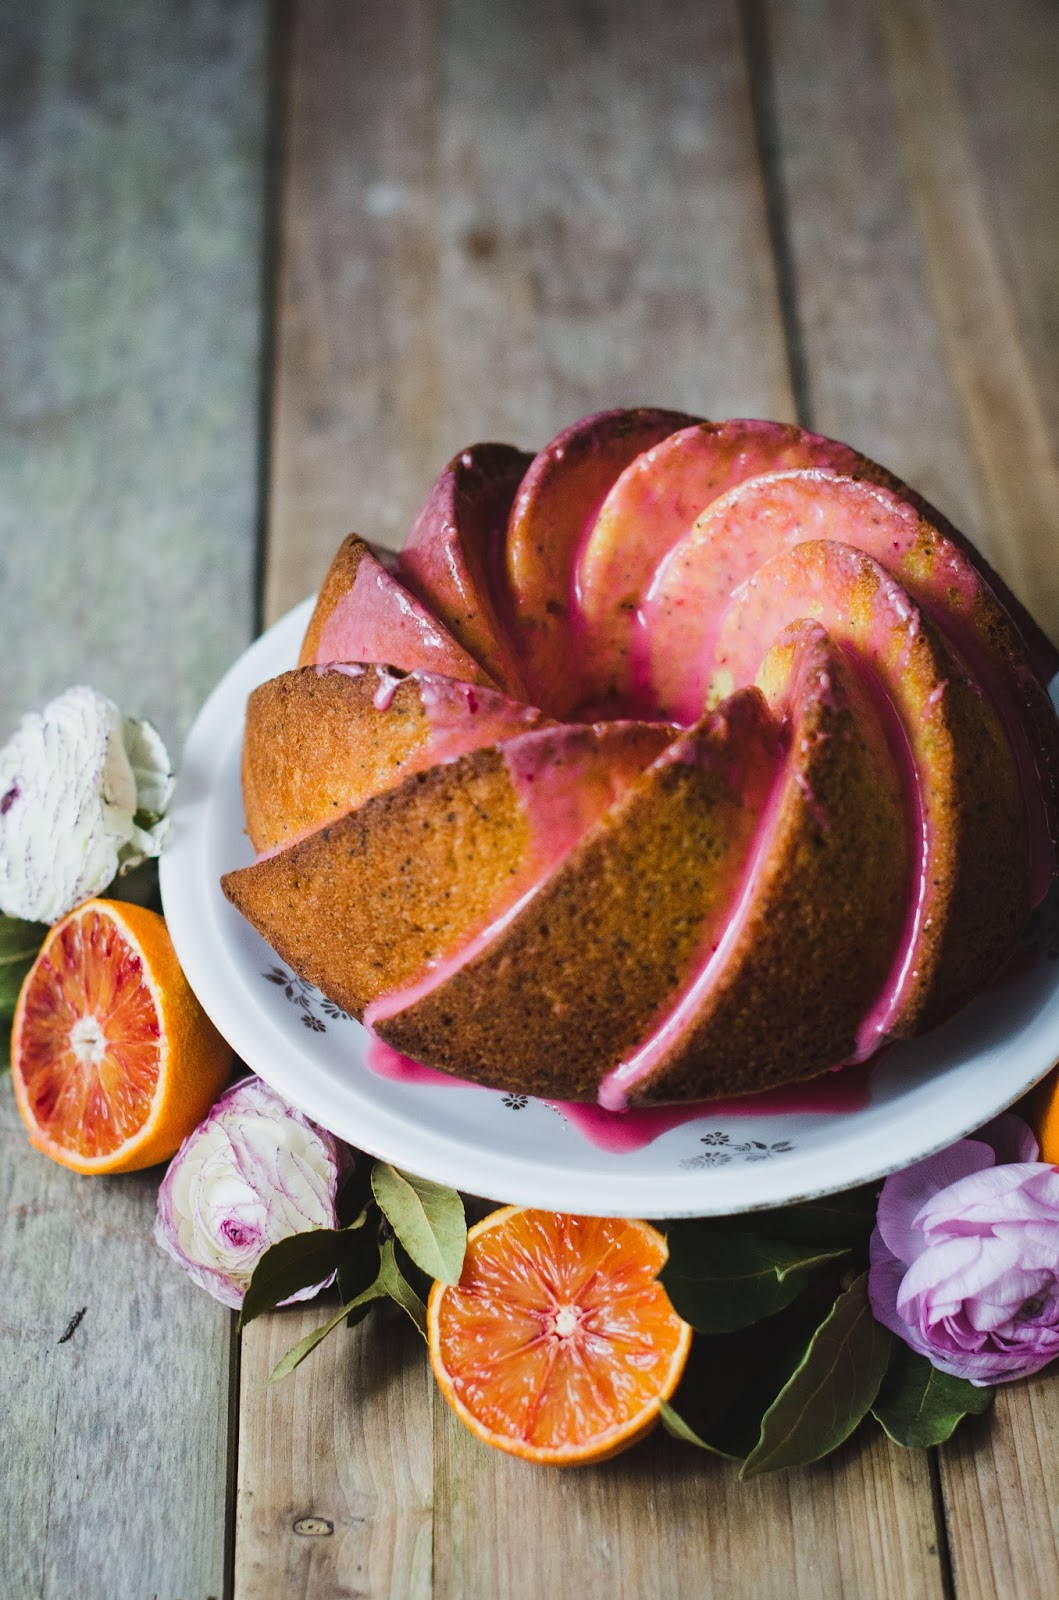 Bundt cake à l'orange sanguine et aux graines de pavot